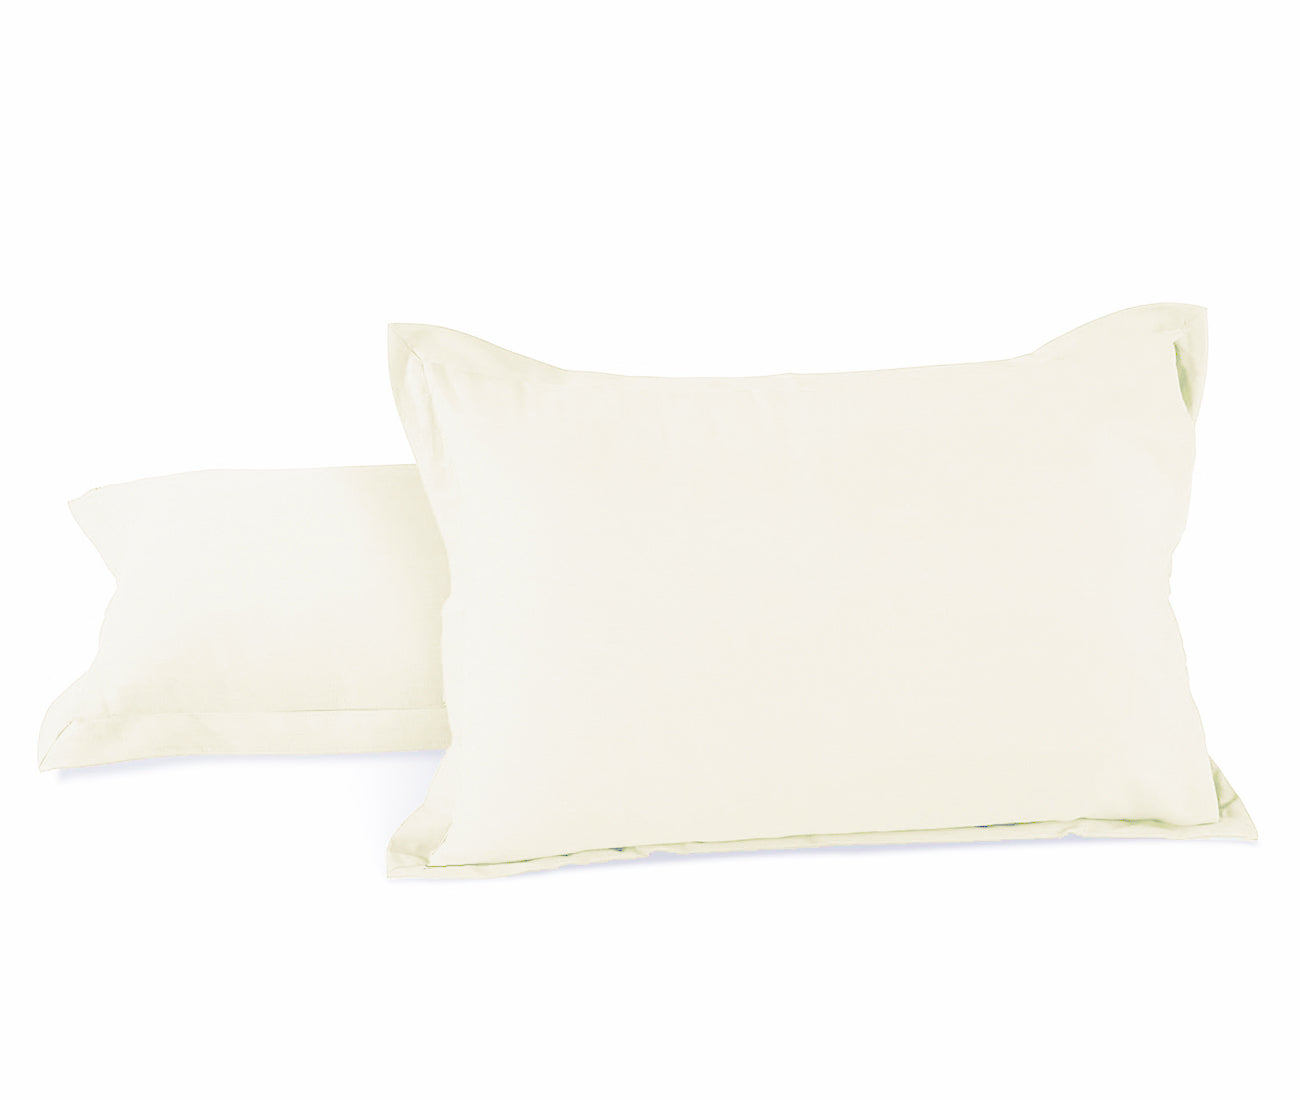 AURAVE Excel Cotton 2 Pieces Plain Pillow Cover Set - 18 X 27 inches, White